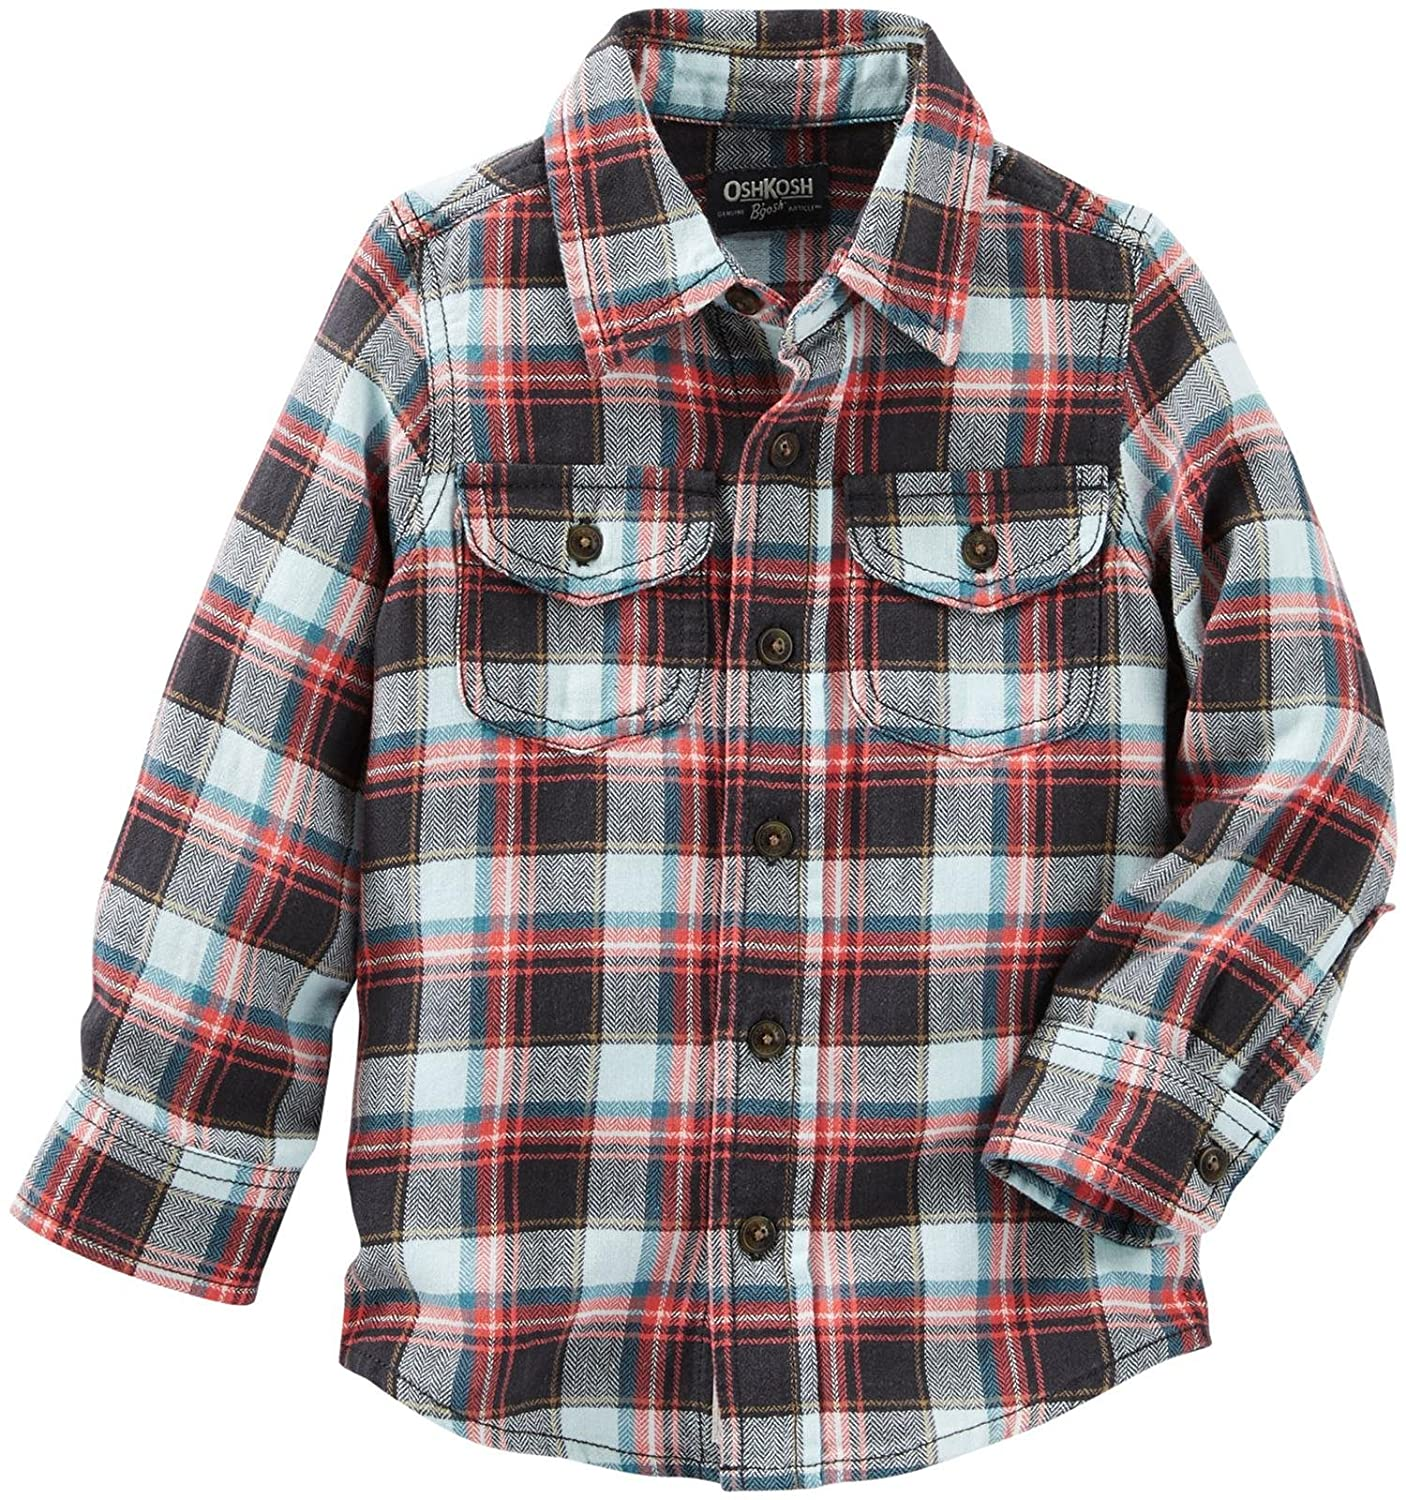 OshKosh B ' gosh Boys Woven Buttonfront、格子柄、5t